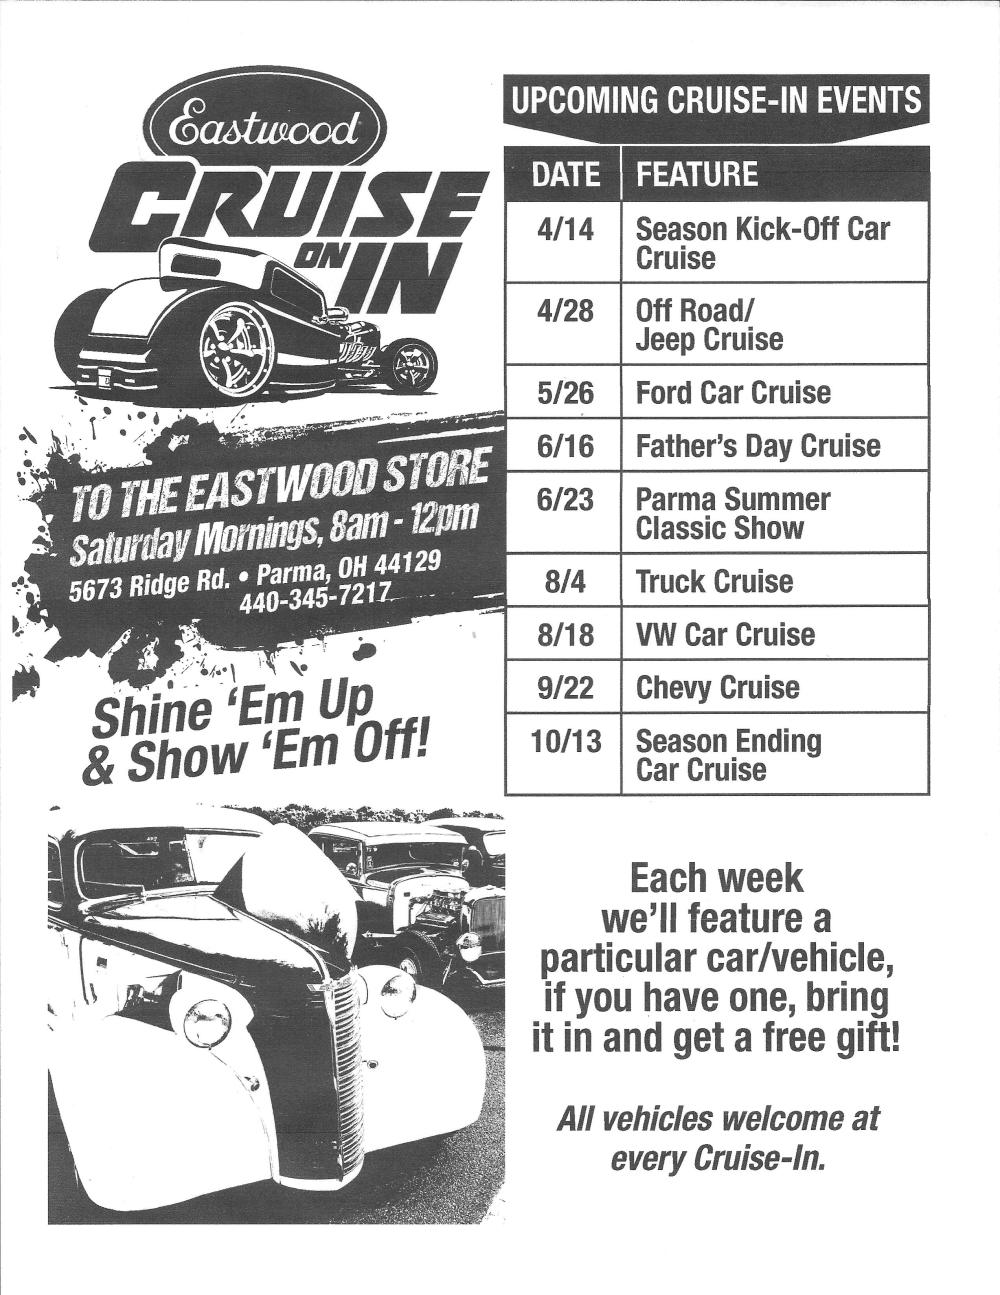 2018 Eastwood Car Cruise schedule